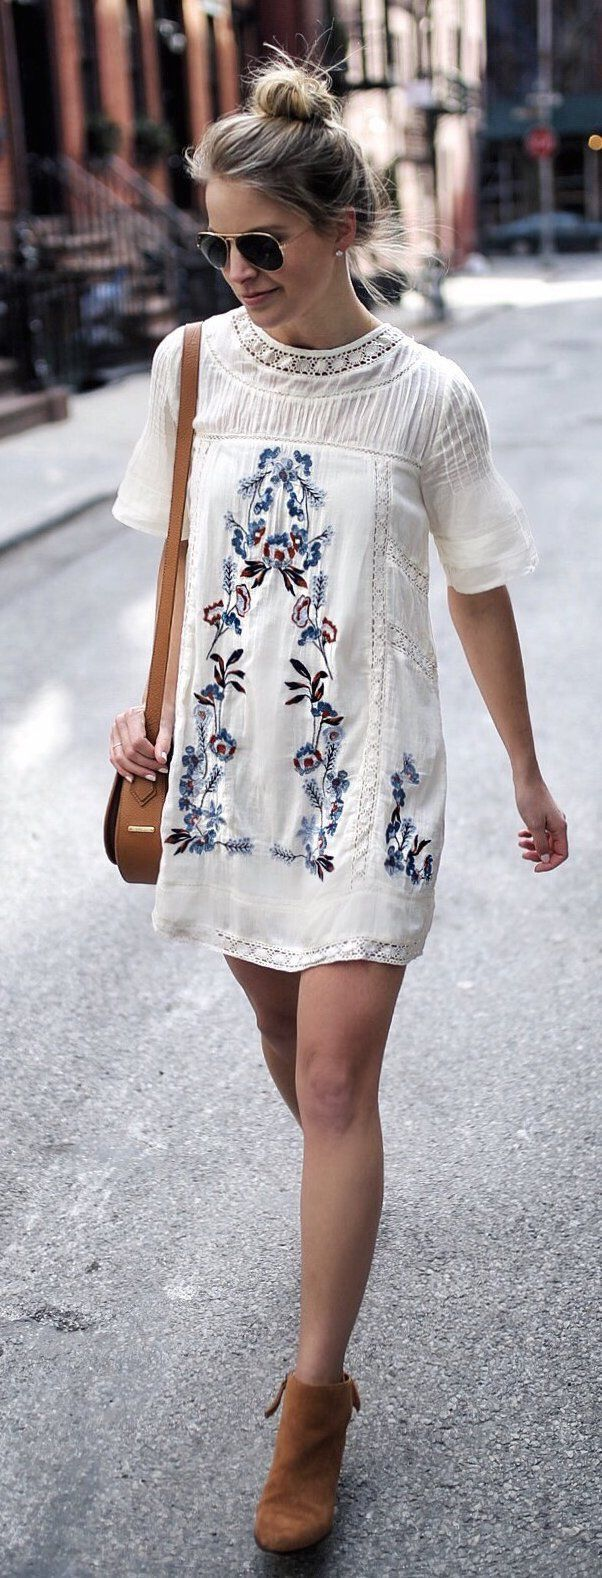 Embroidered dress. - Are You A Boho-Chic? Check out our groovy Bohemian Fashion collection! Our items go viral all over the internet. Hurry